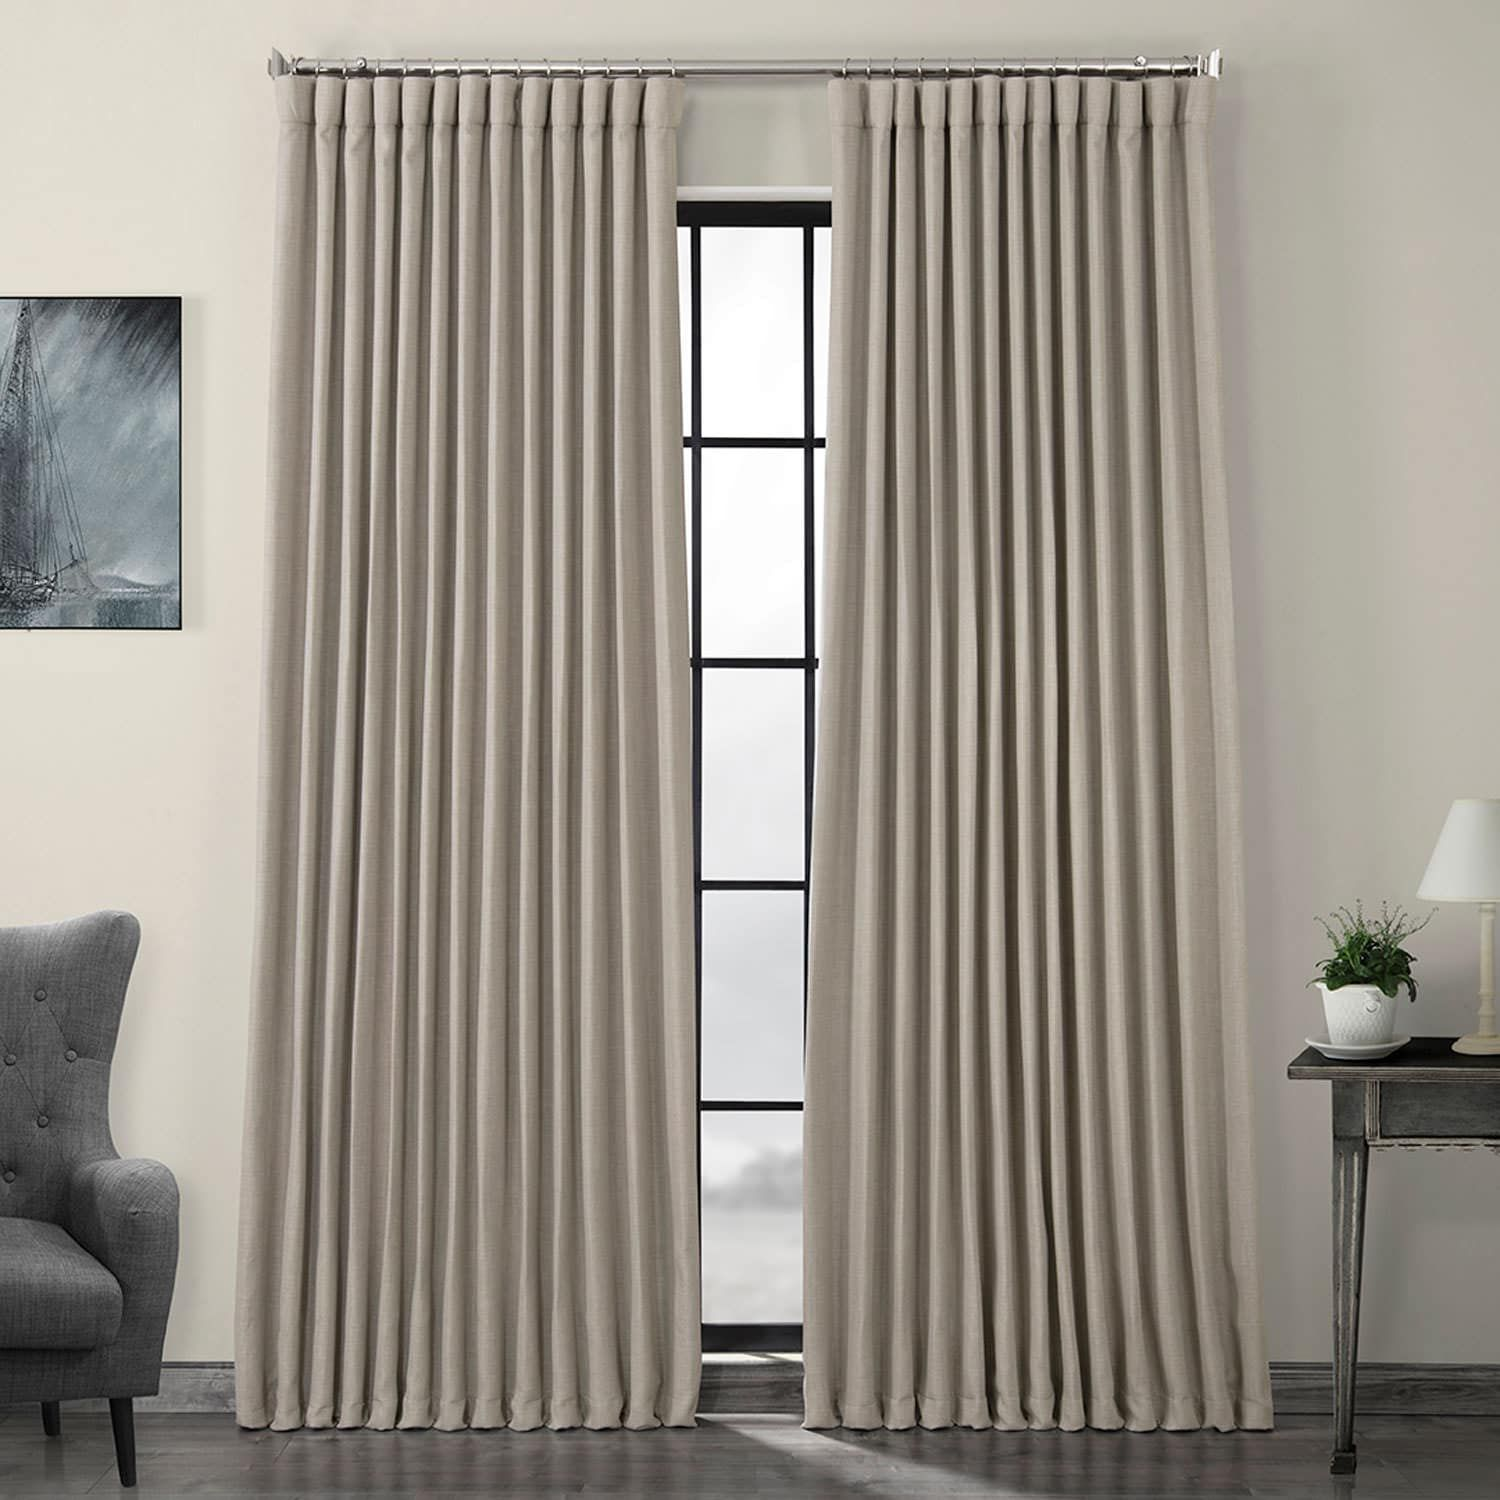 Oatmeal Faux Linen Extra Wide Blackout Room Darkening Curtain Drapes Half Price Drapes Curtains Curtains 1 Panel